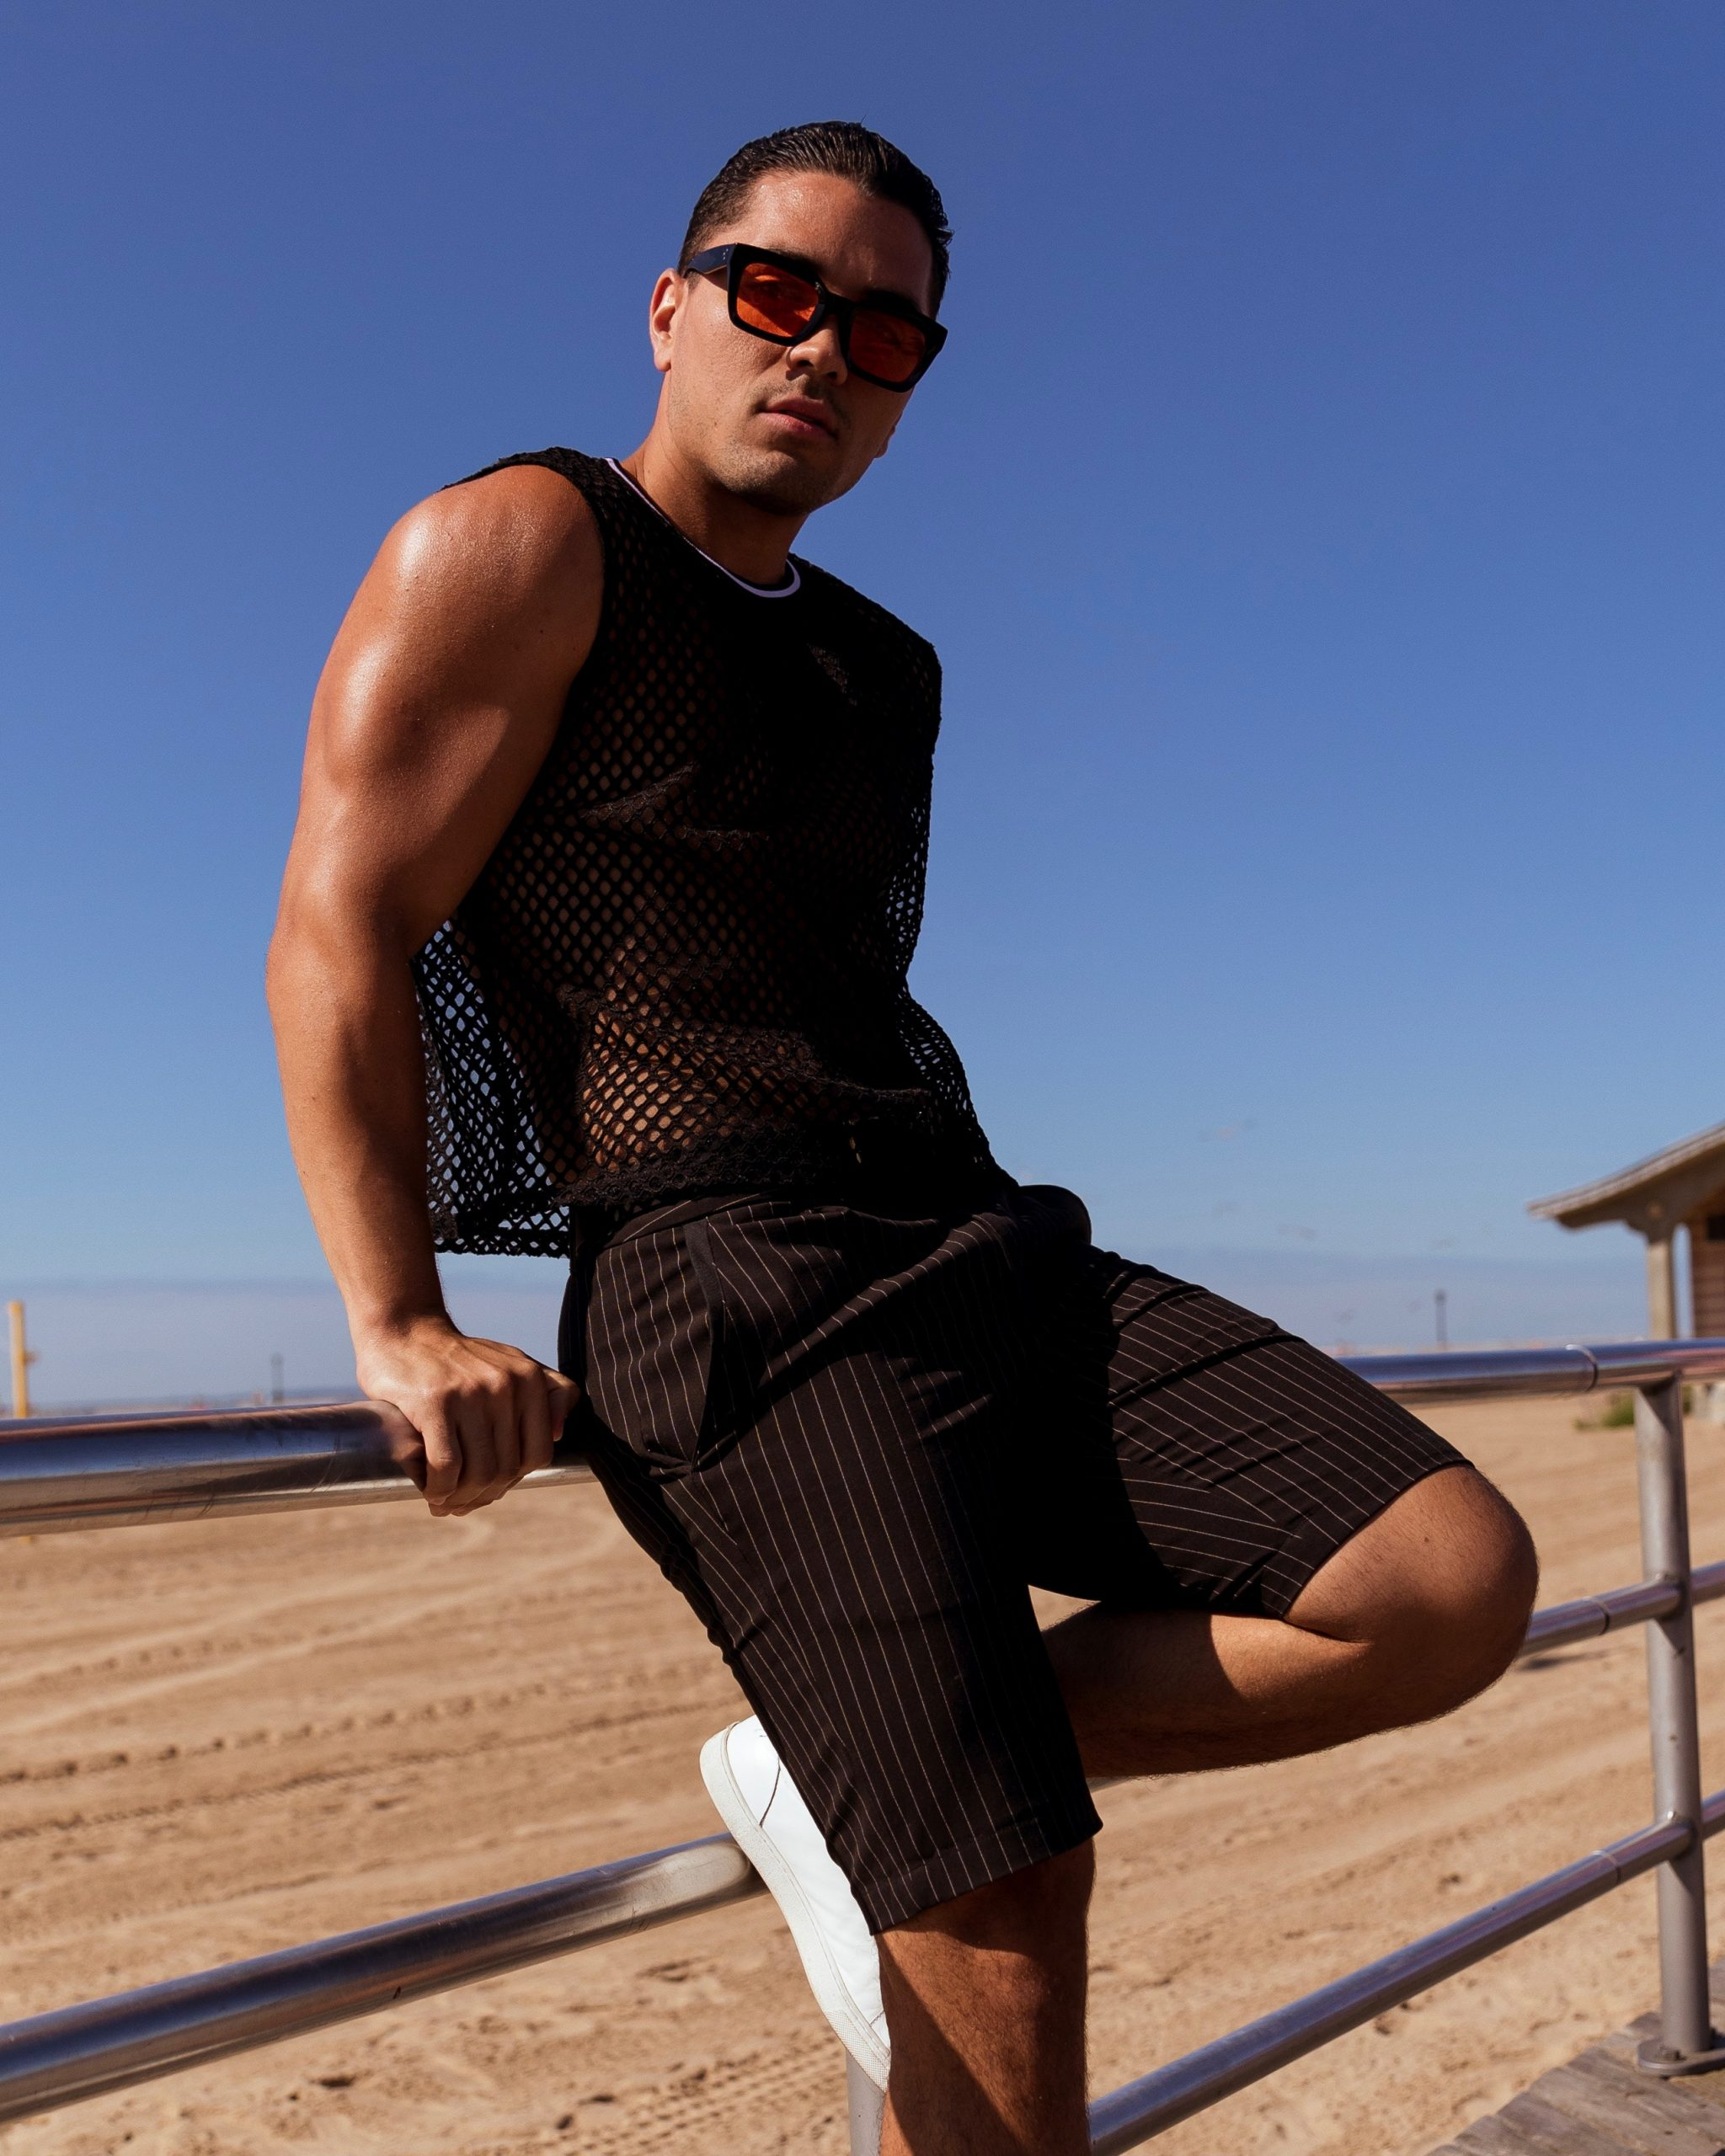 man wearing shades, a black mesh top and shorts while leaning on a railing at the beach, casual fashion, casual outfits, casual clothes, casual wear